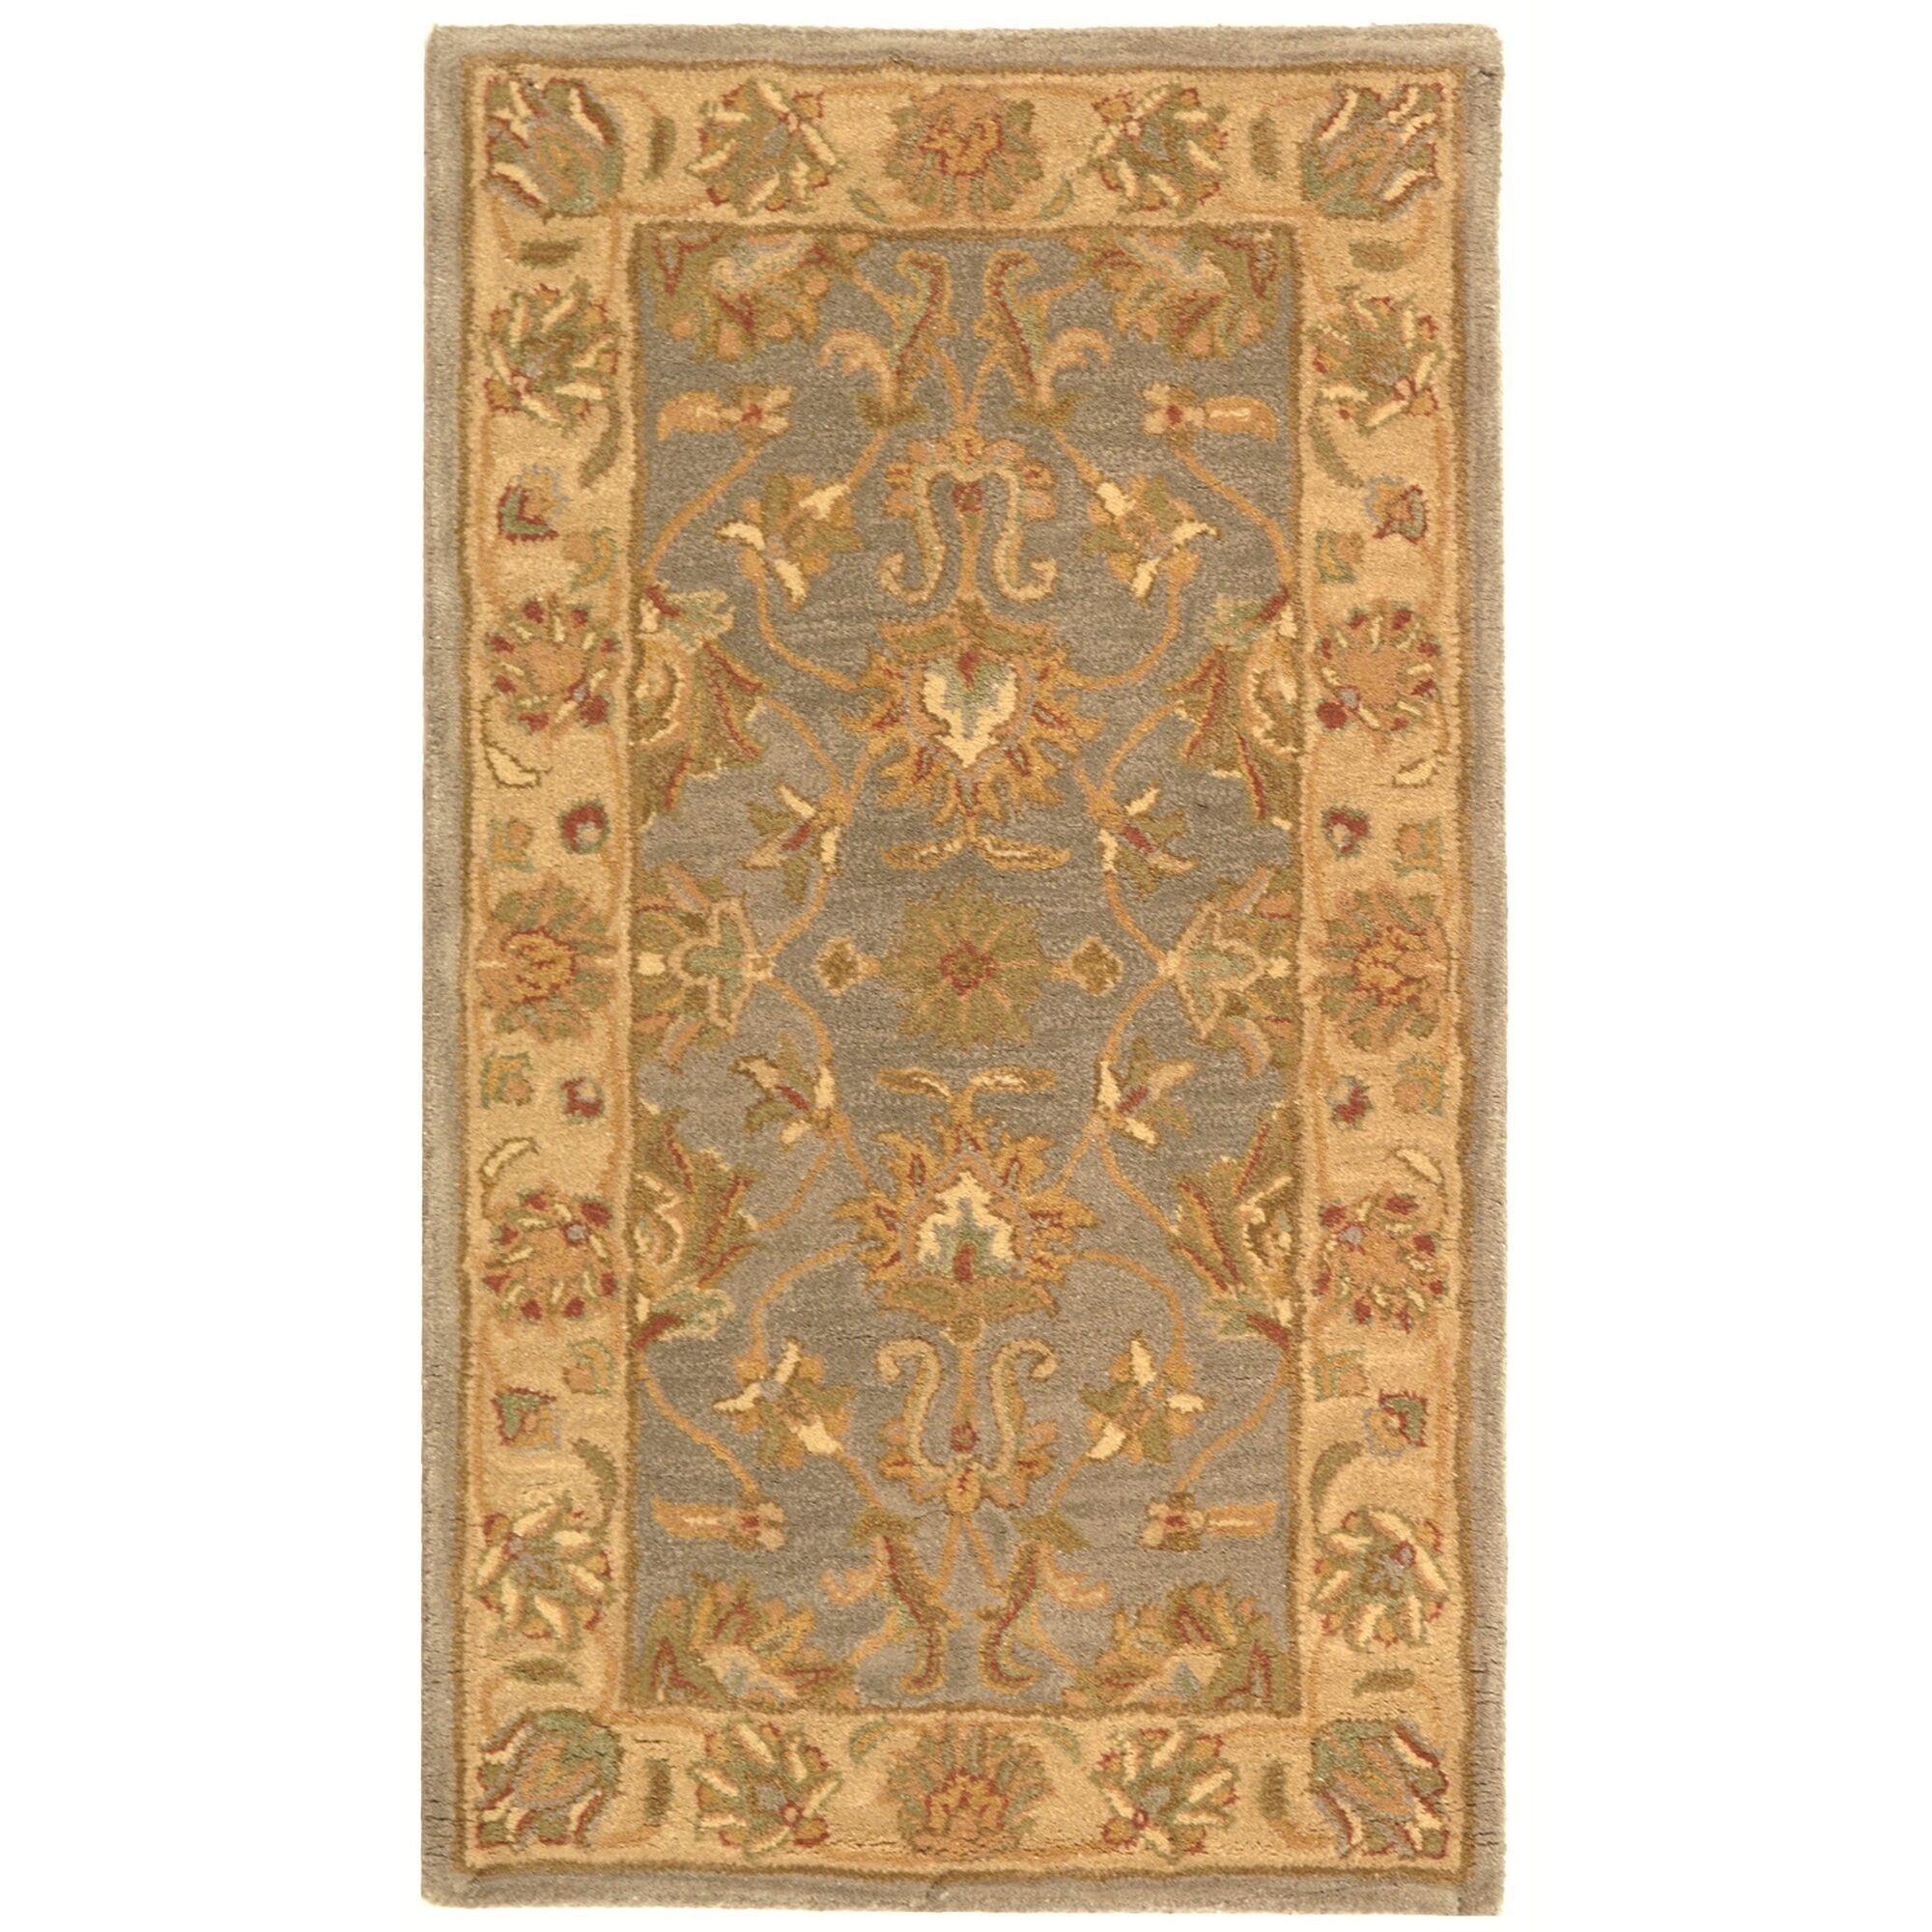 Cranmore Hand-Tufted Wool Blue/Beige Area Rug Rug Size: Rectangle 6' x 9'